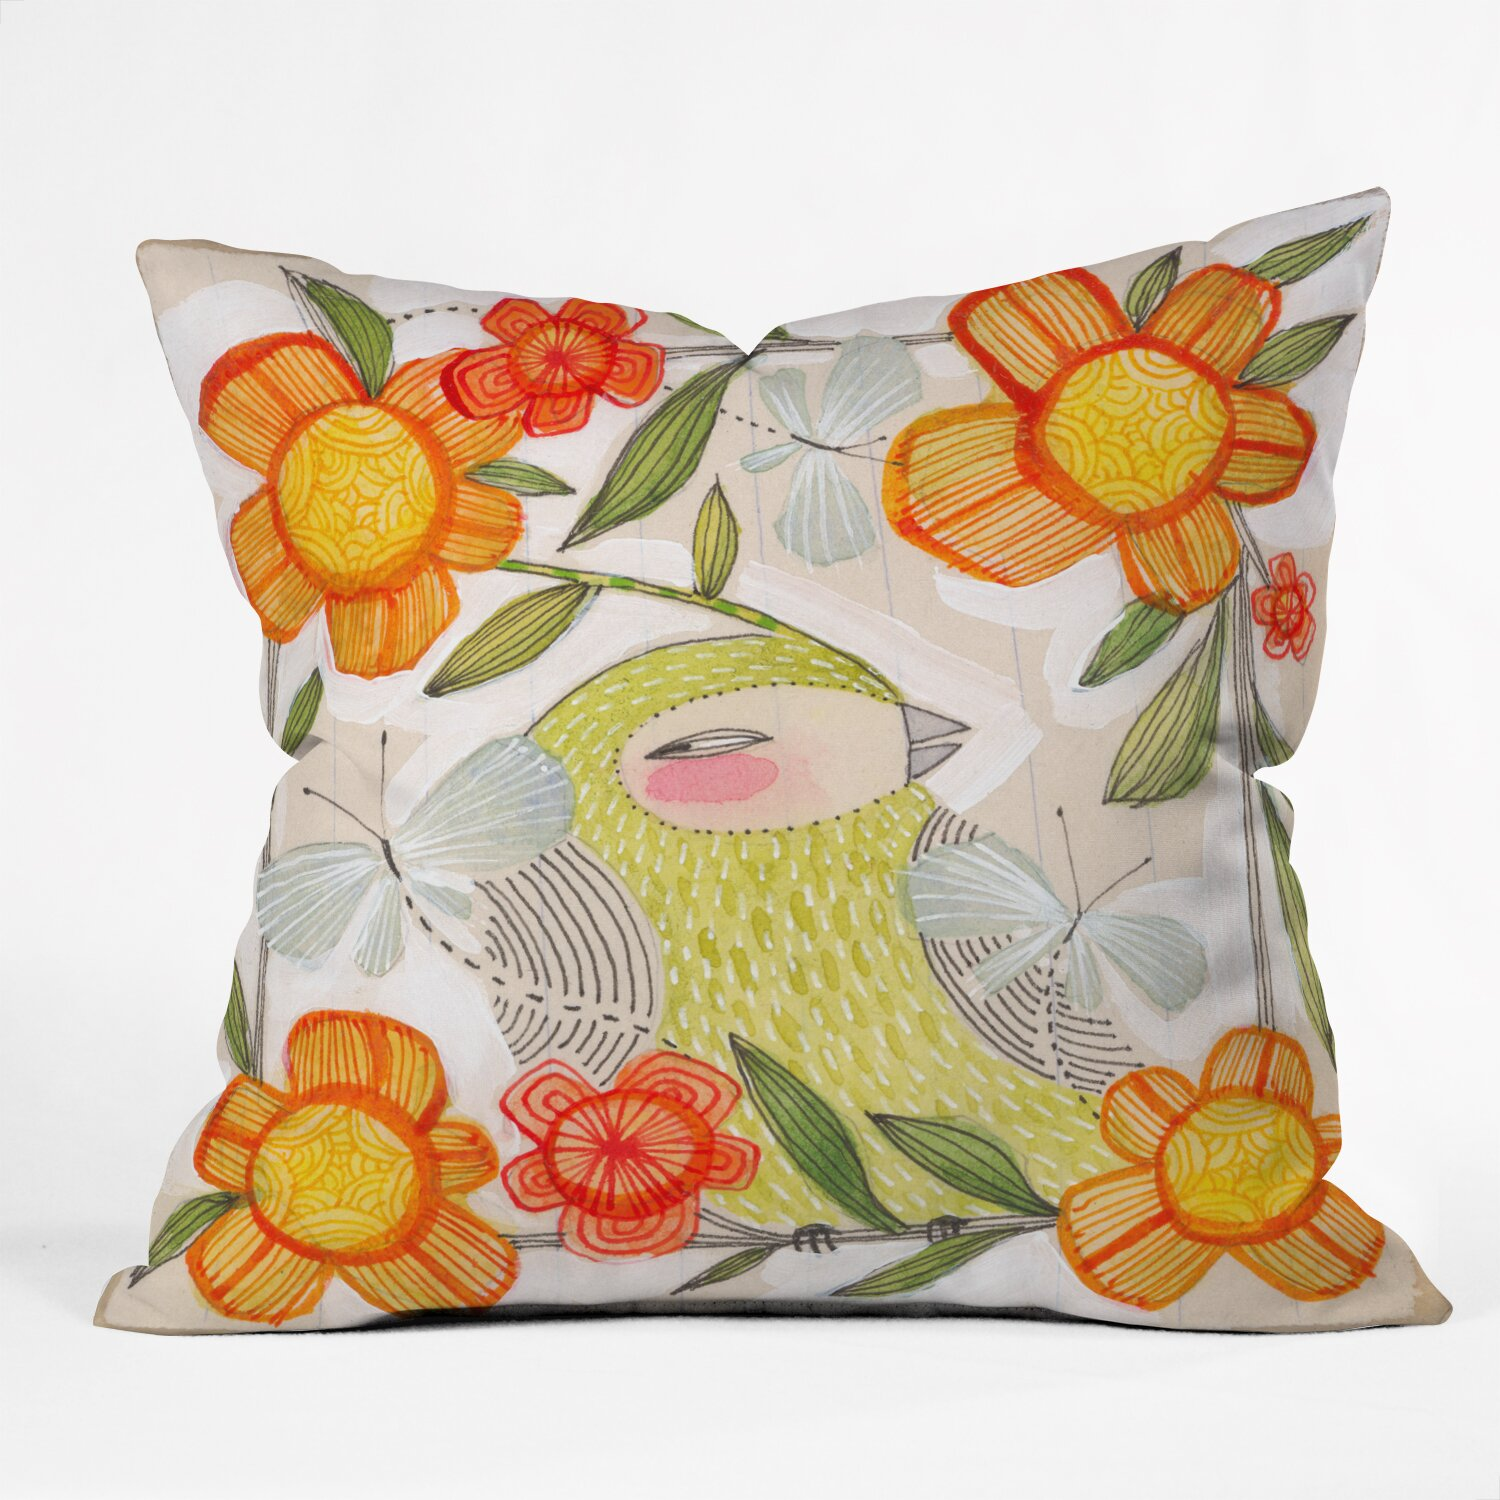 Decorative Pillow Wayfair : DENY Designs Cori Dantini Fine Comanions Throw Pillow & Reviews Wayfair